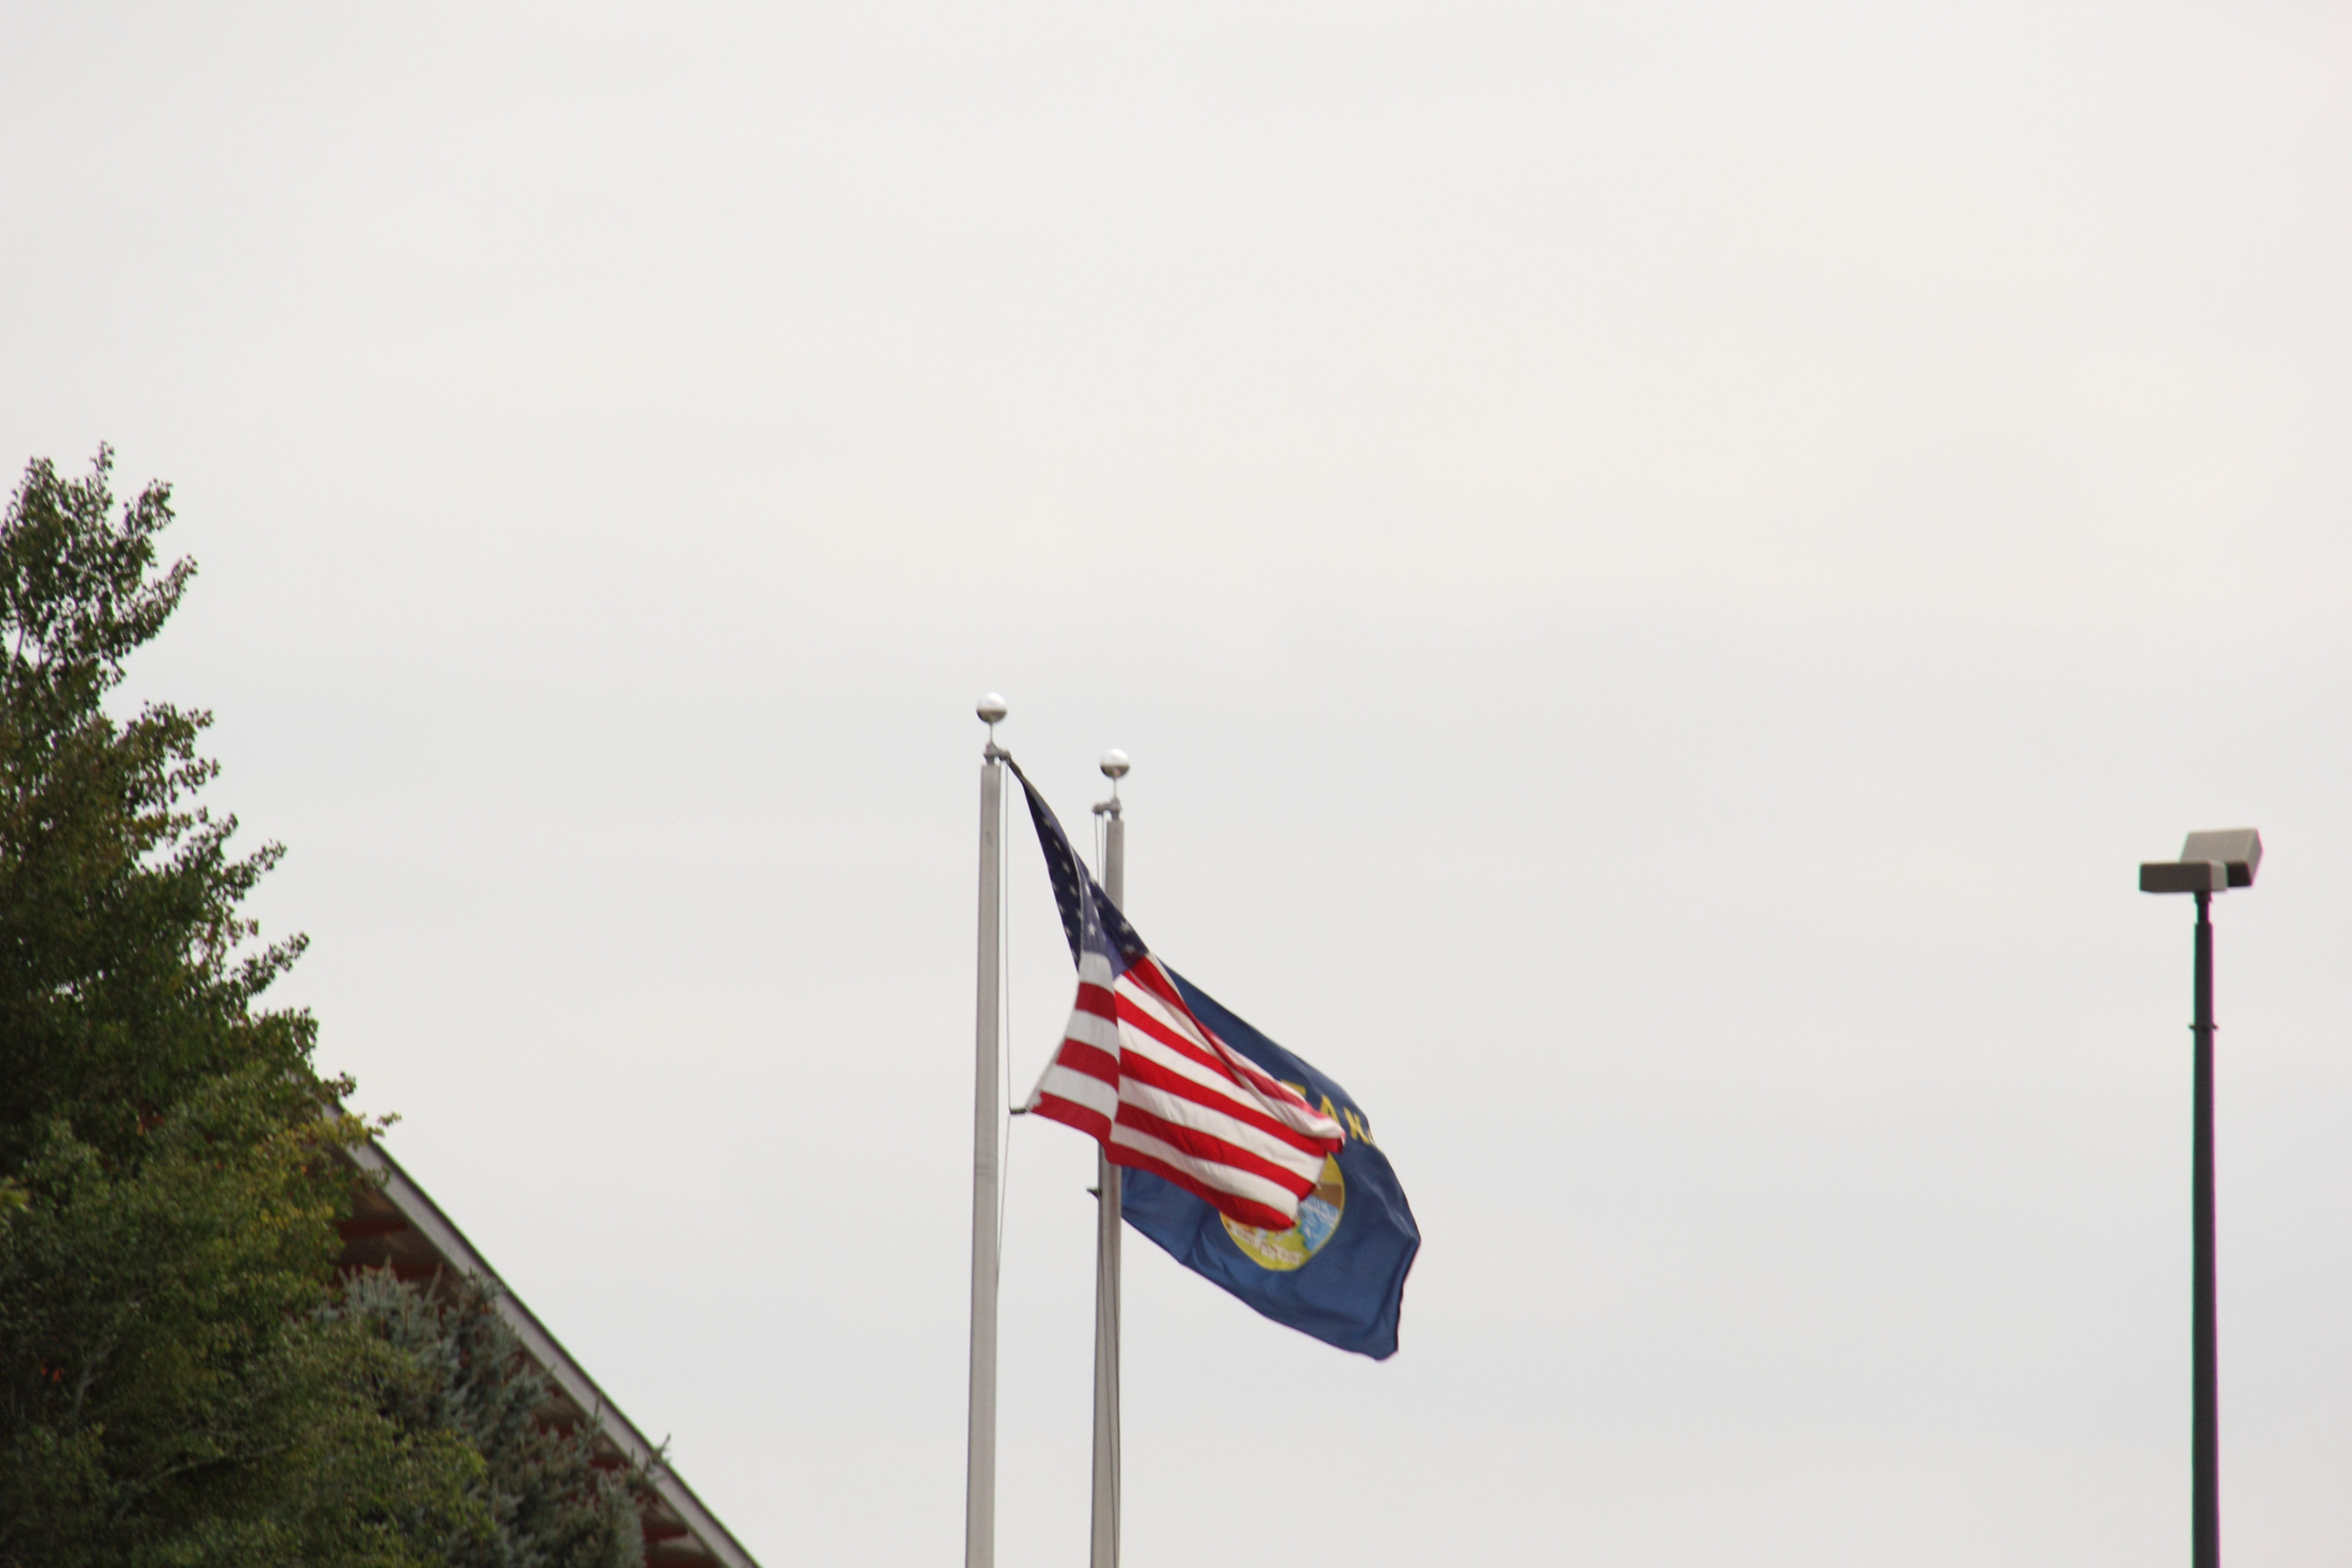 American flag and Montana flag flying